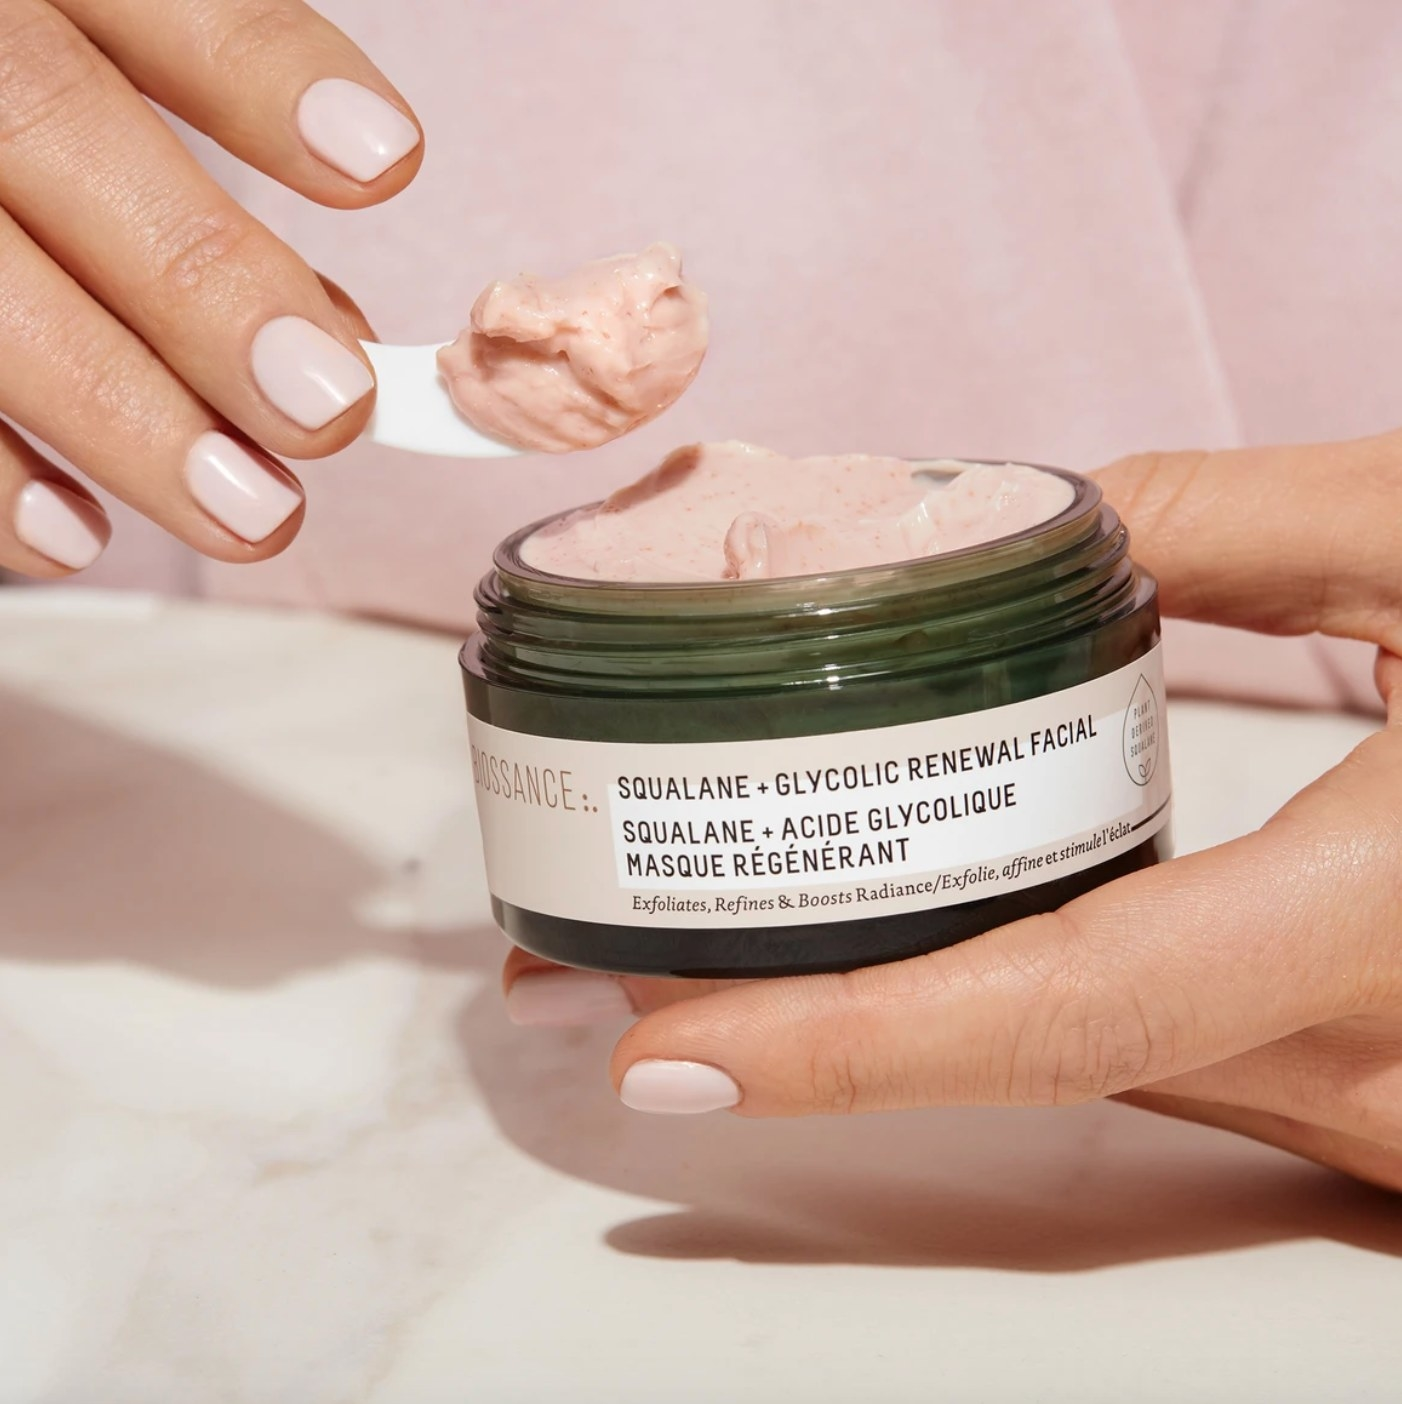 The squalane and glycolic renewal facial being scooped out of it's green jar